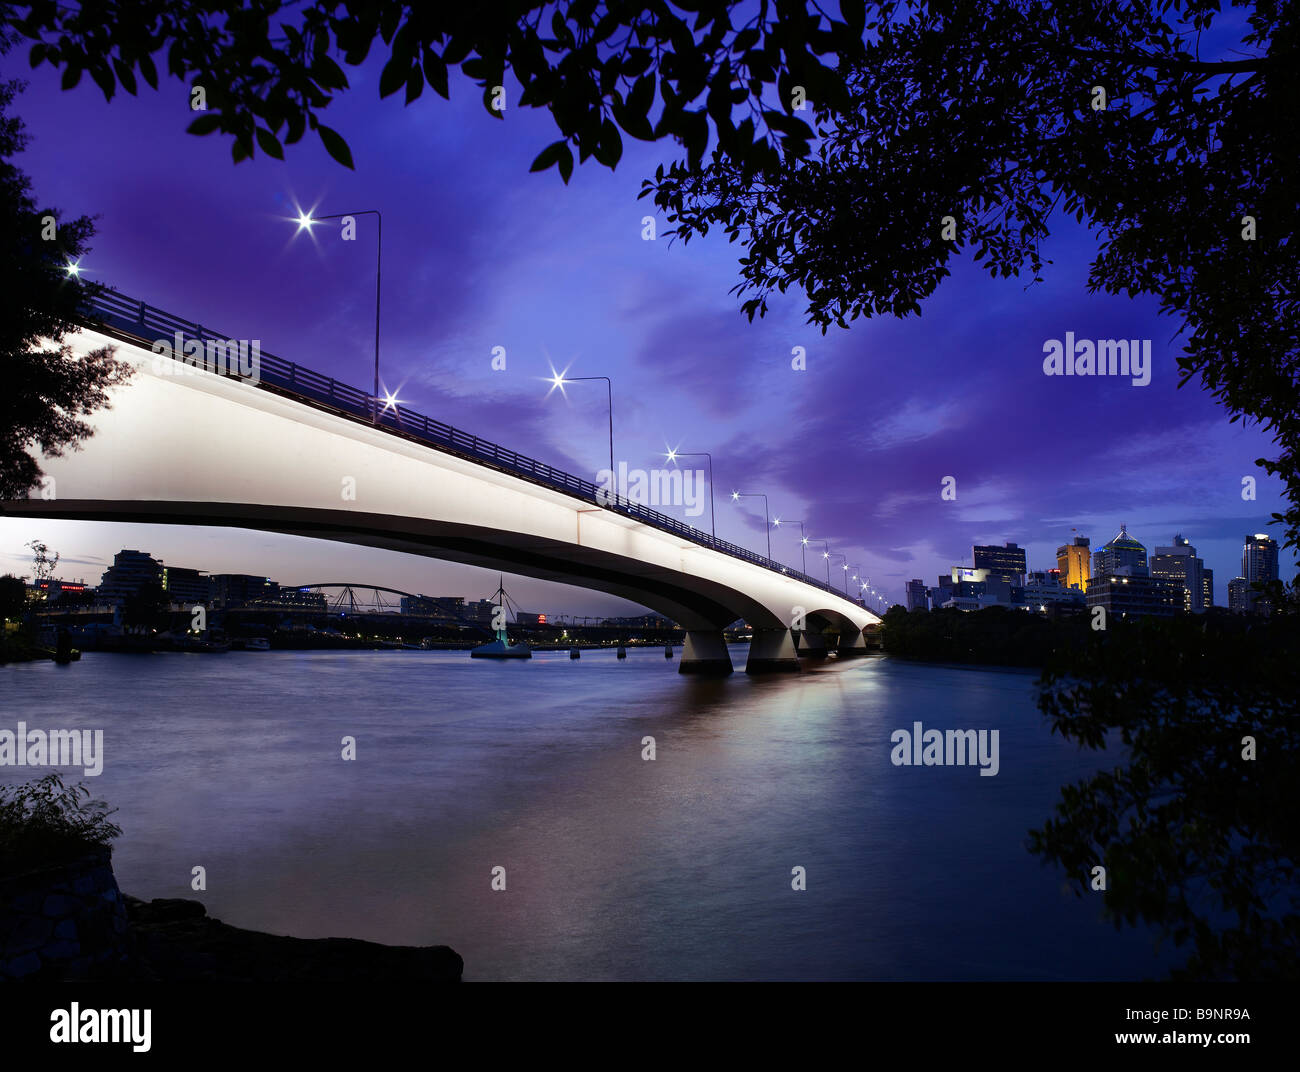 Captain Cook Bridge Brisbane Australia - Stock Image